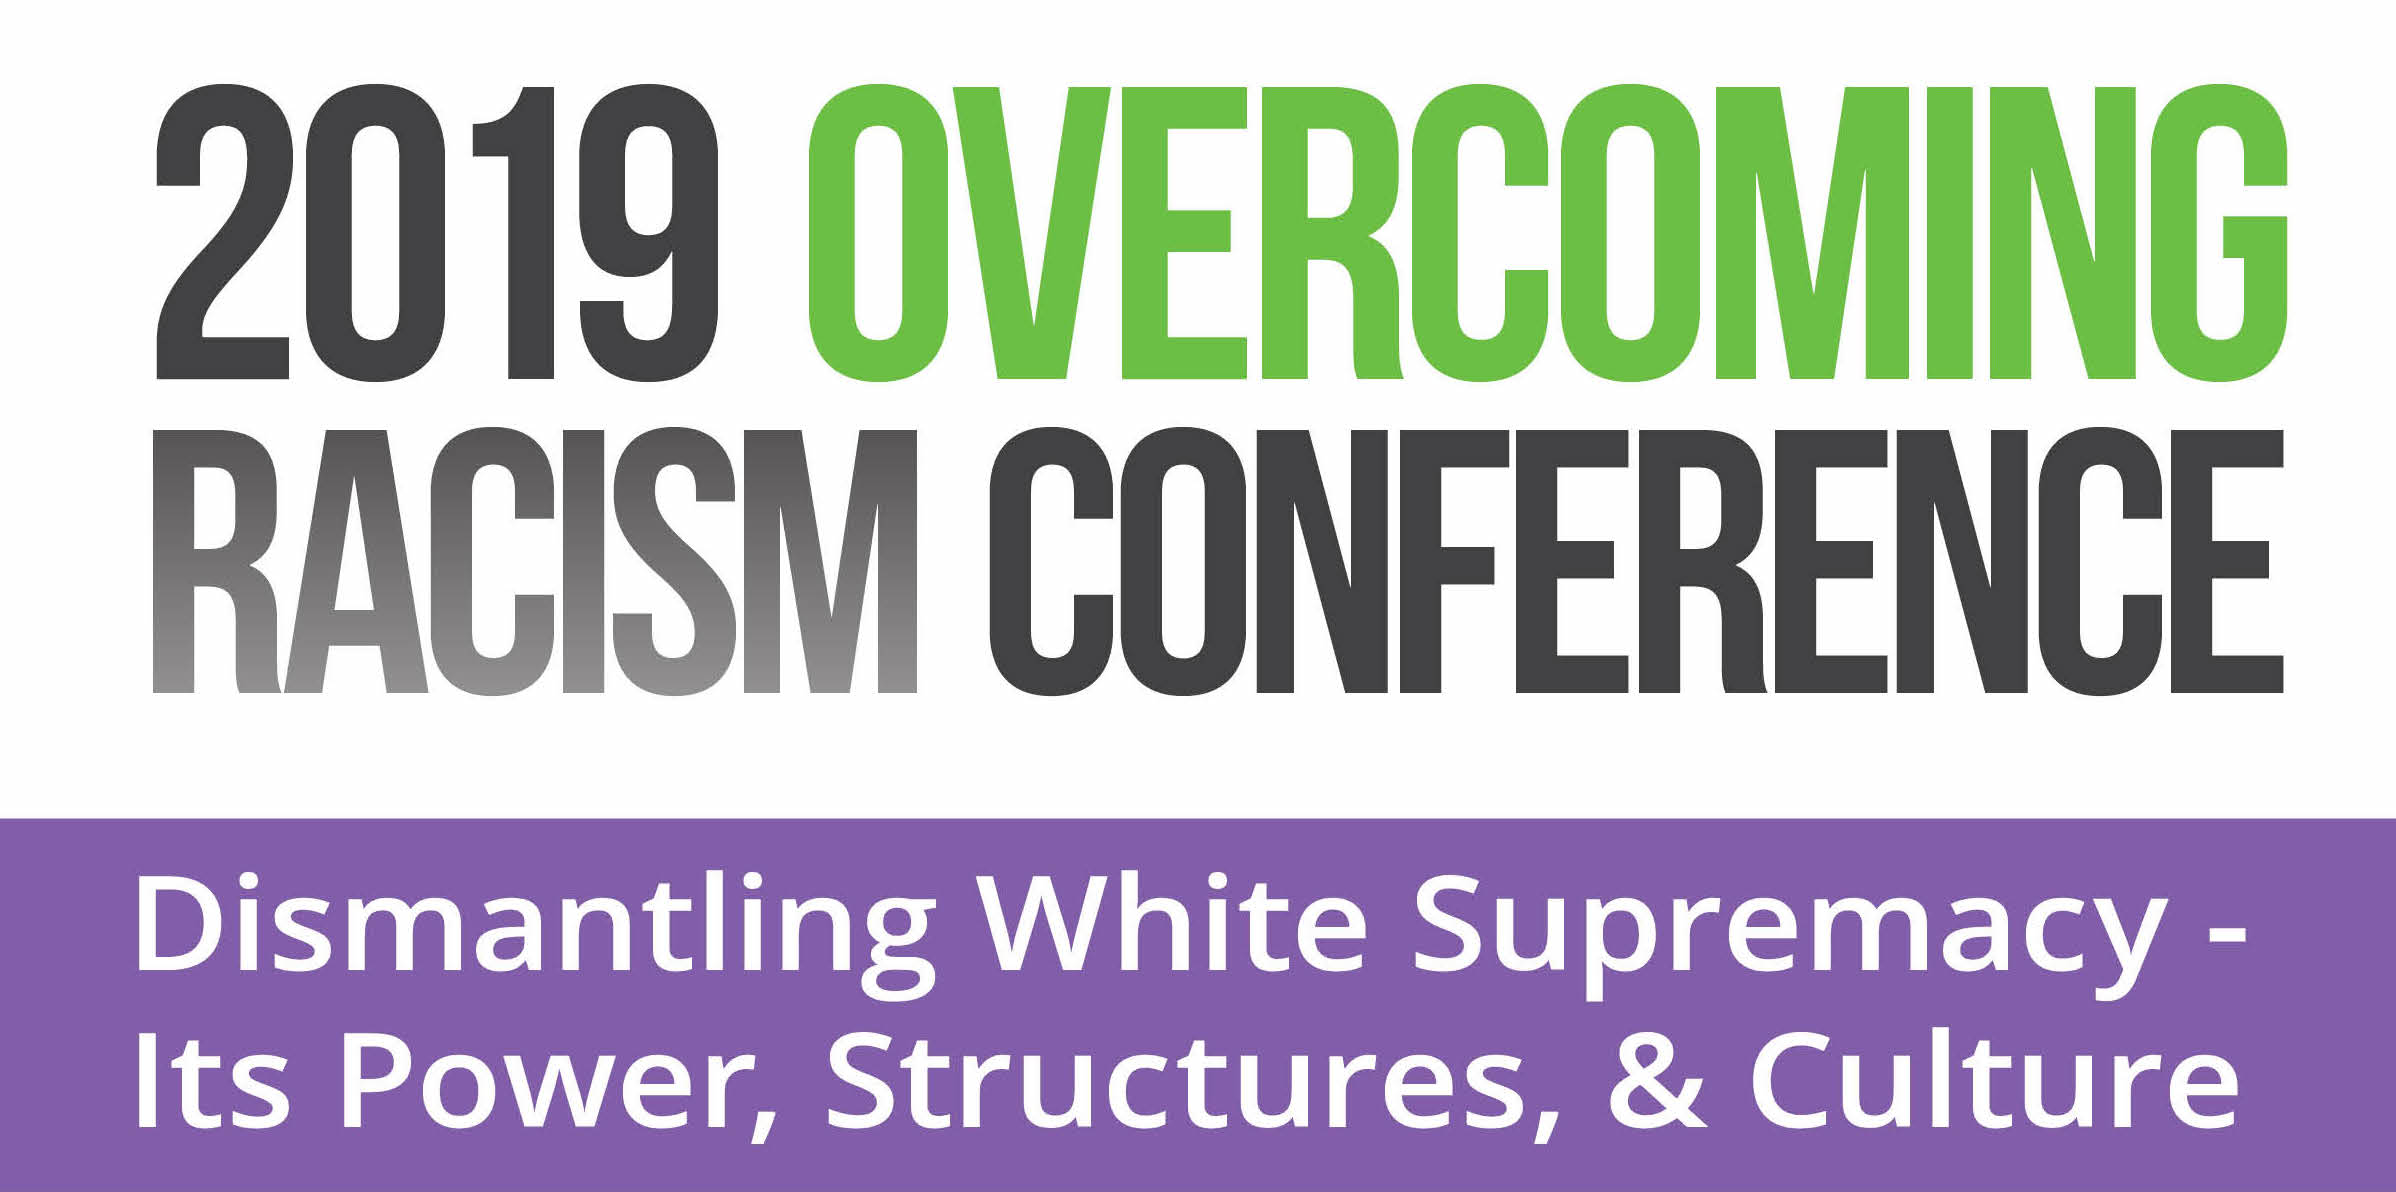 2019 Overcoming Racism Conference